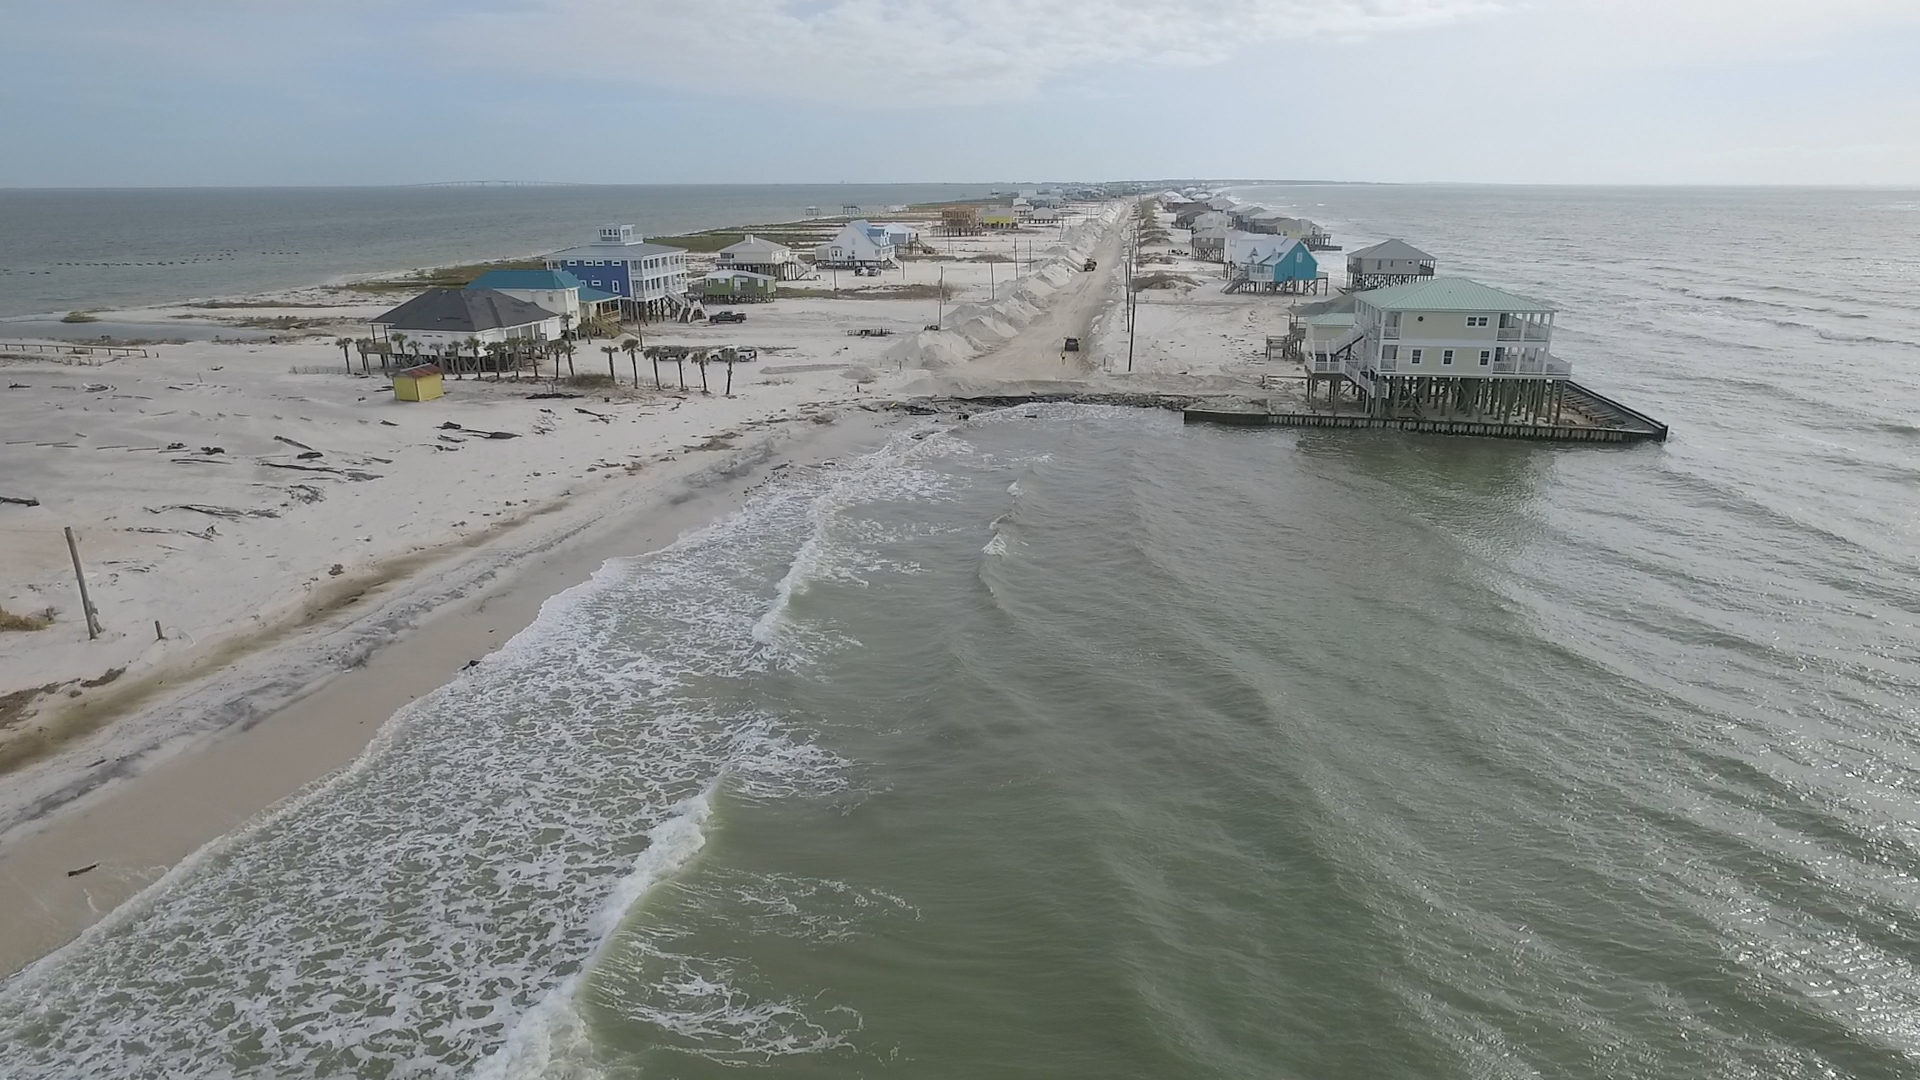 Aerial shot of the West End of Dauphin Island